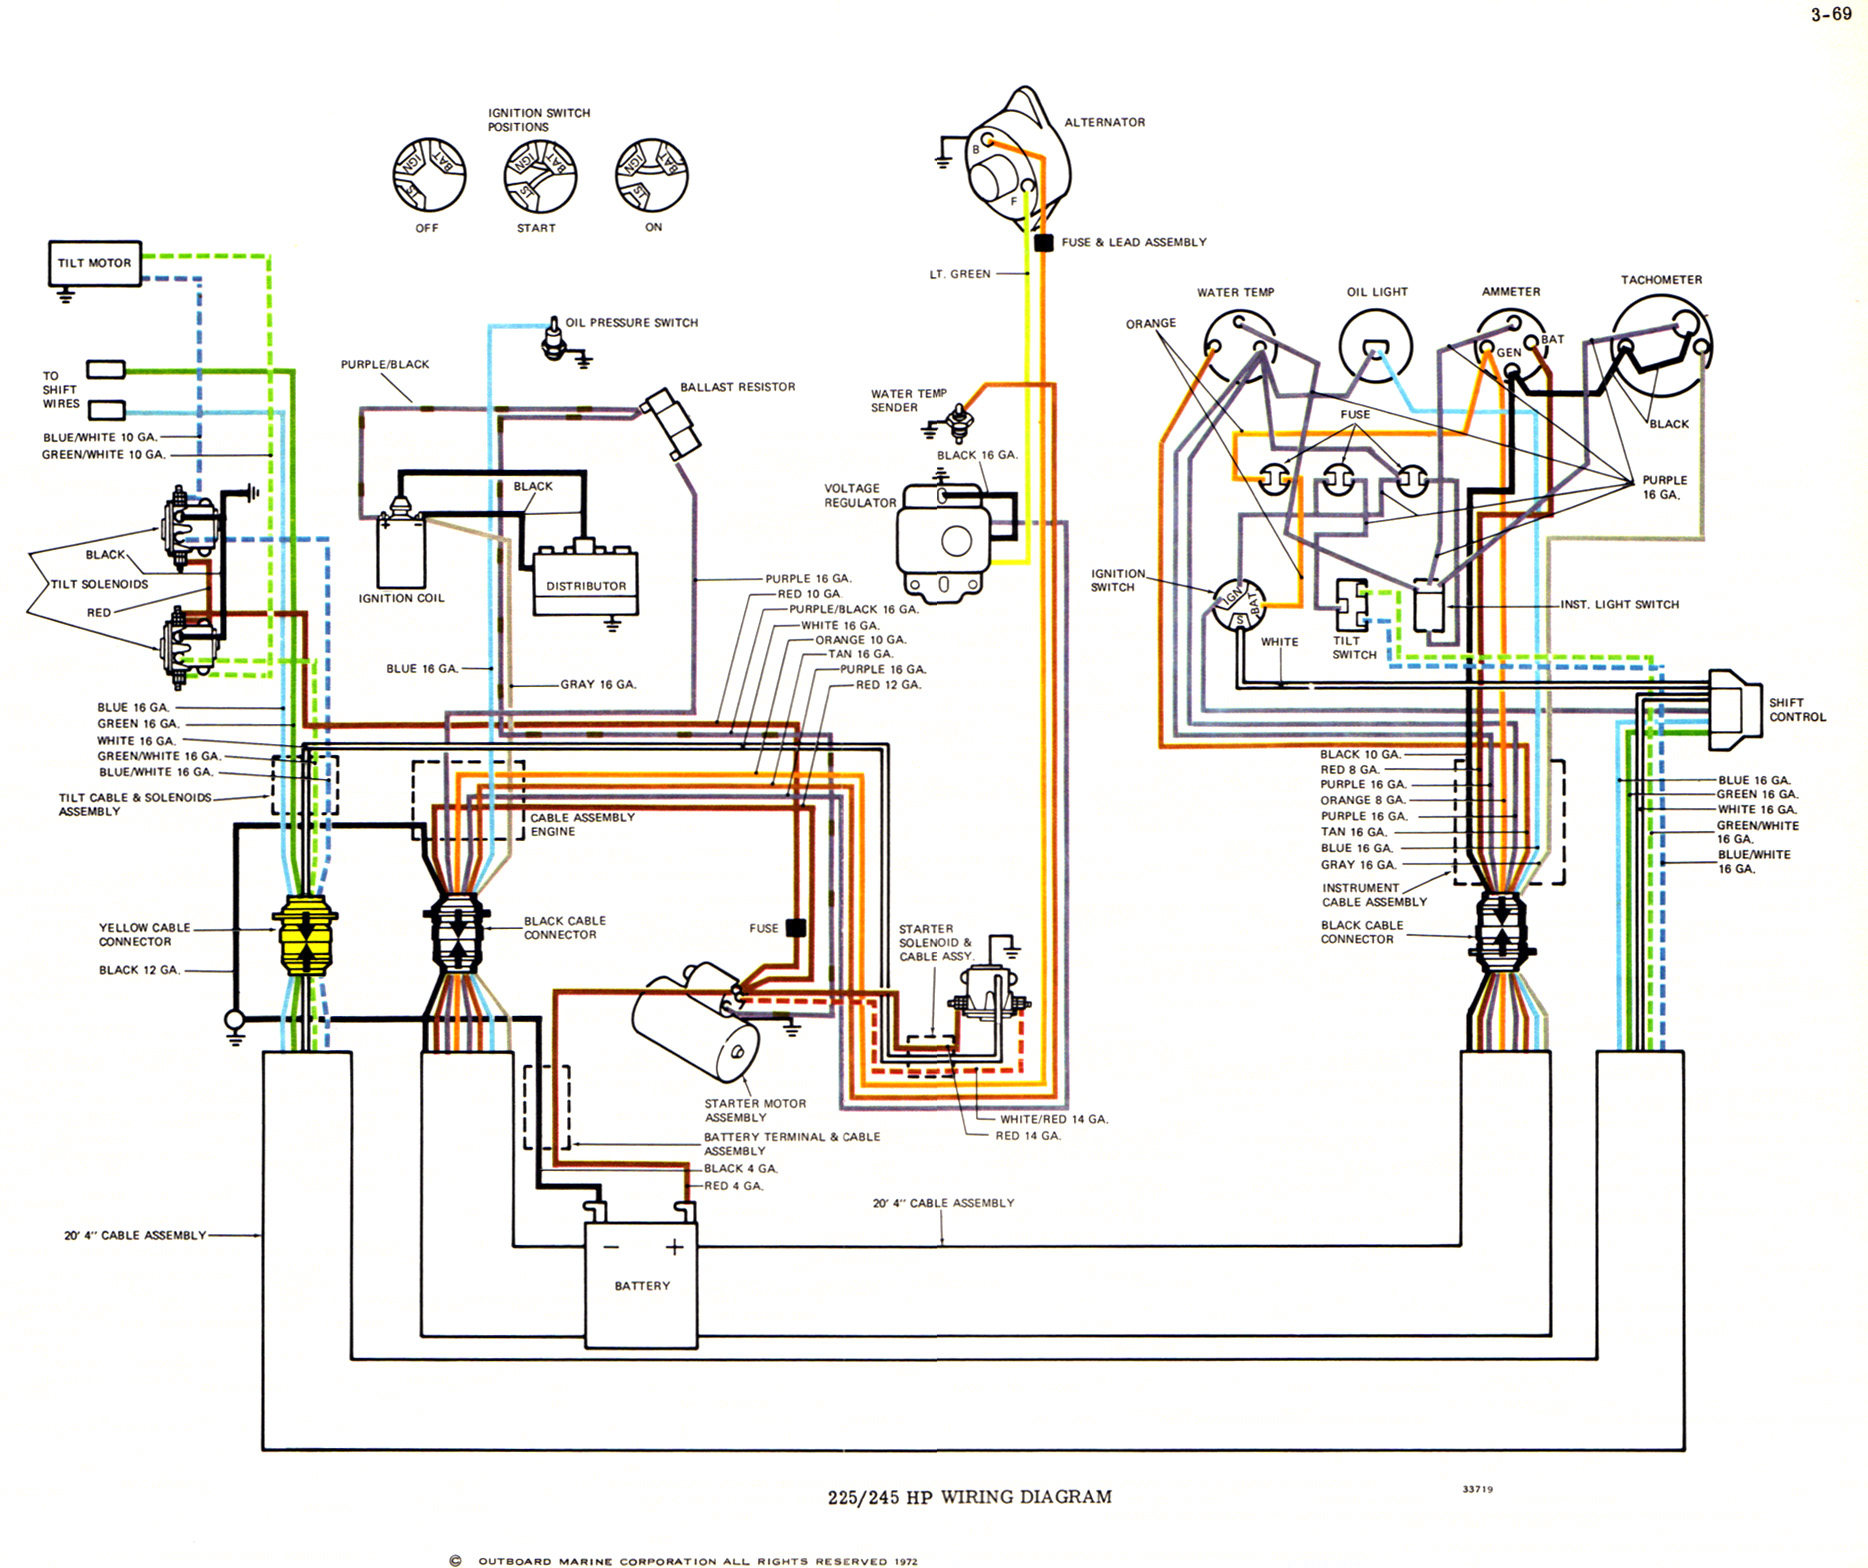 73_OMC_V8_all_big delco est ignition wiring diagram wiring 3 wire delco \u2022 wiring type r 4 in 1 tachometer wiring diagram at soozxer.org